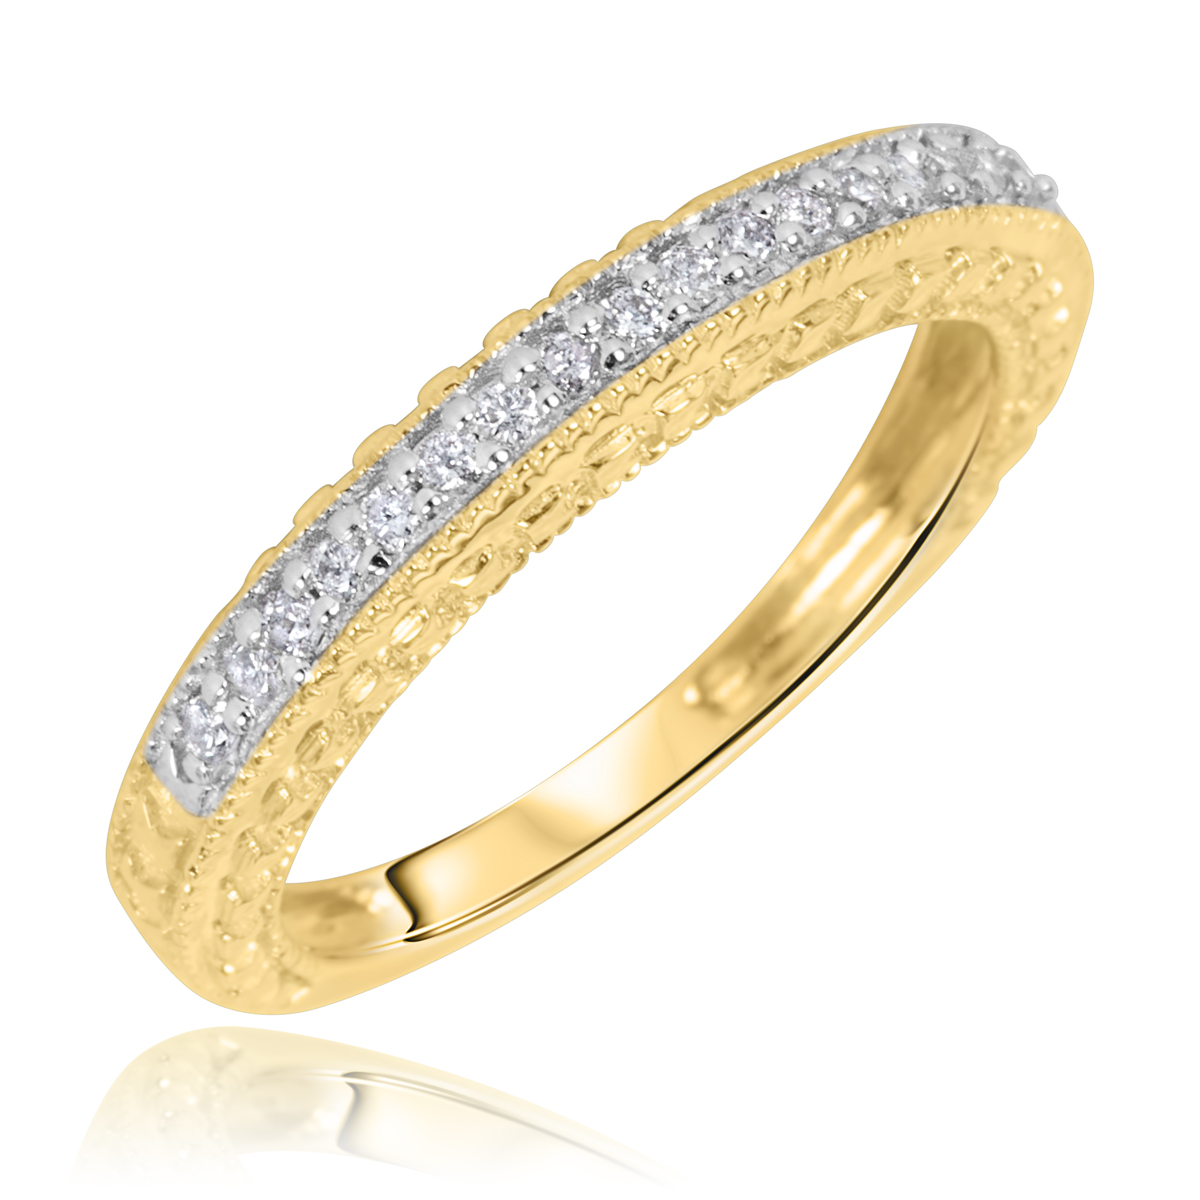 1 carat trio wedding ring set 14k yellow gold my